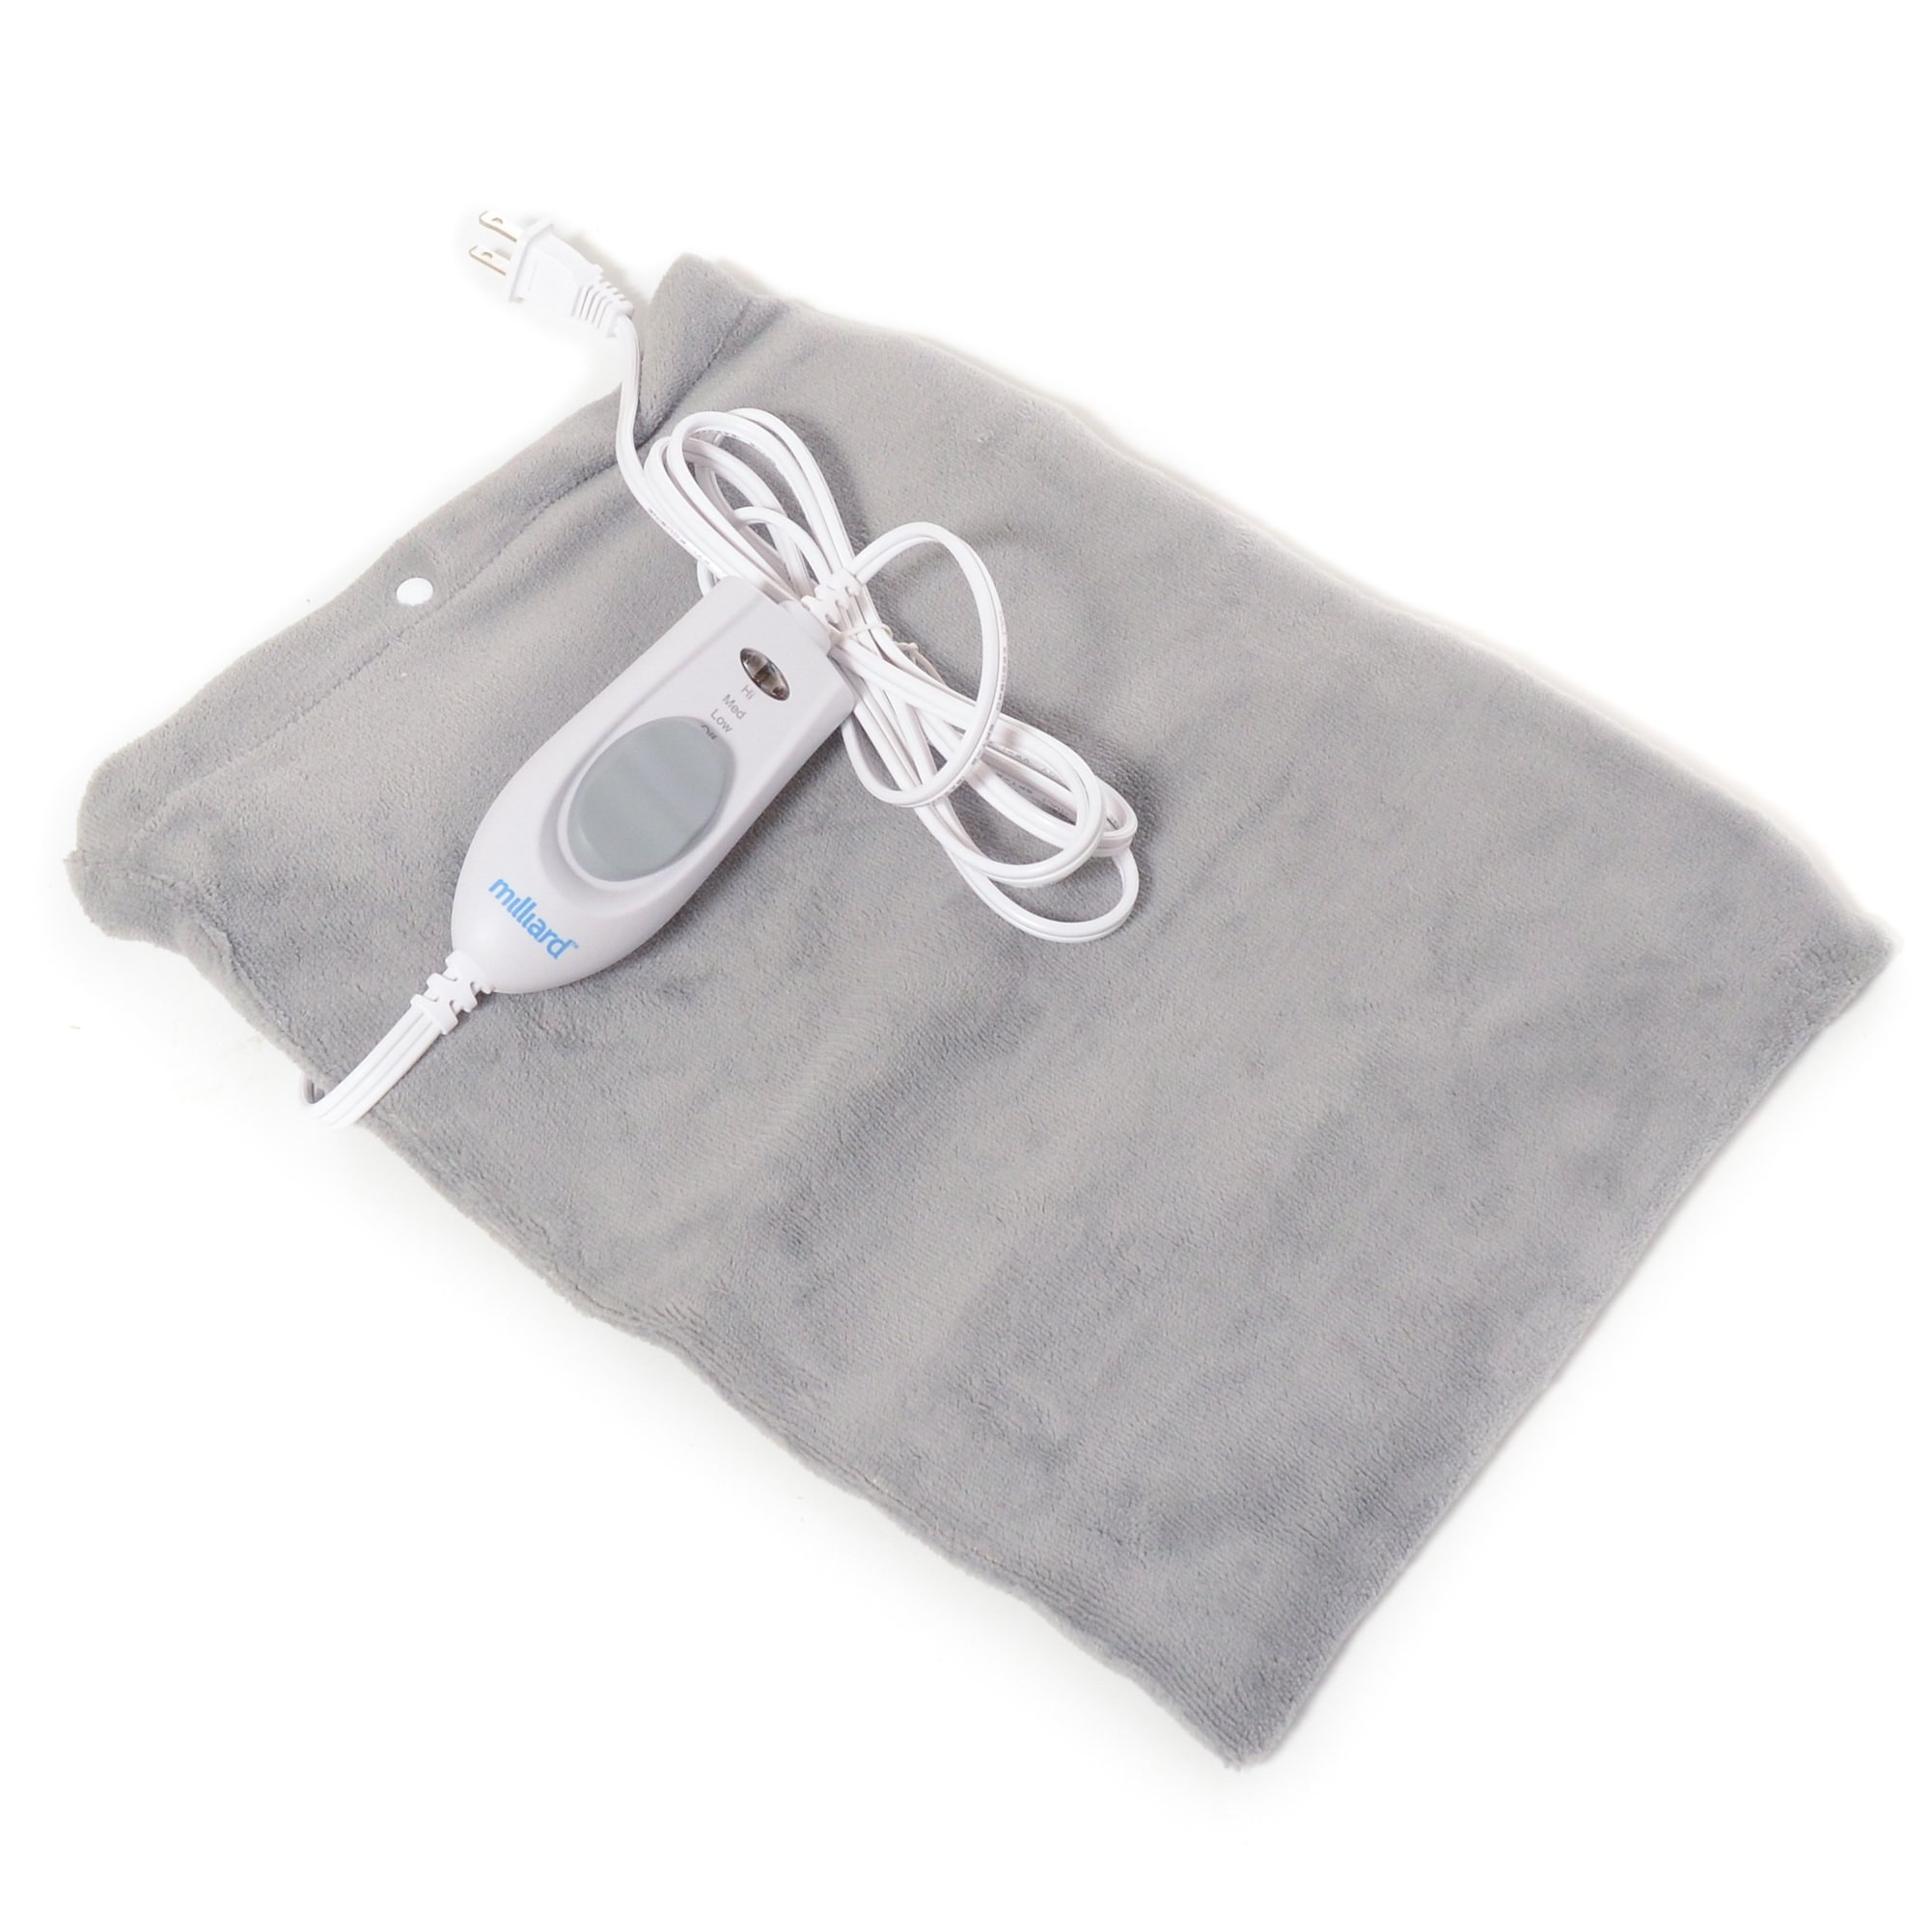 Milliard Electric Therapy Heating Pad for Fast Pain Relief - Gray - 15in x 12in by Milliard